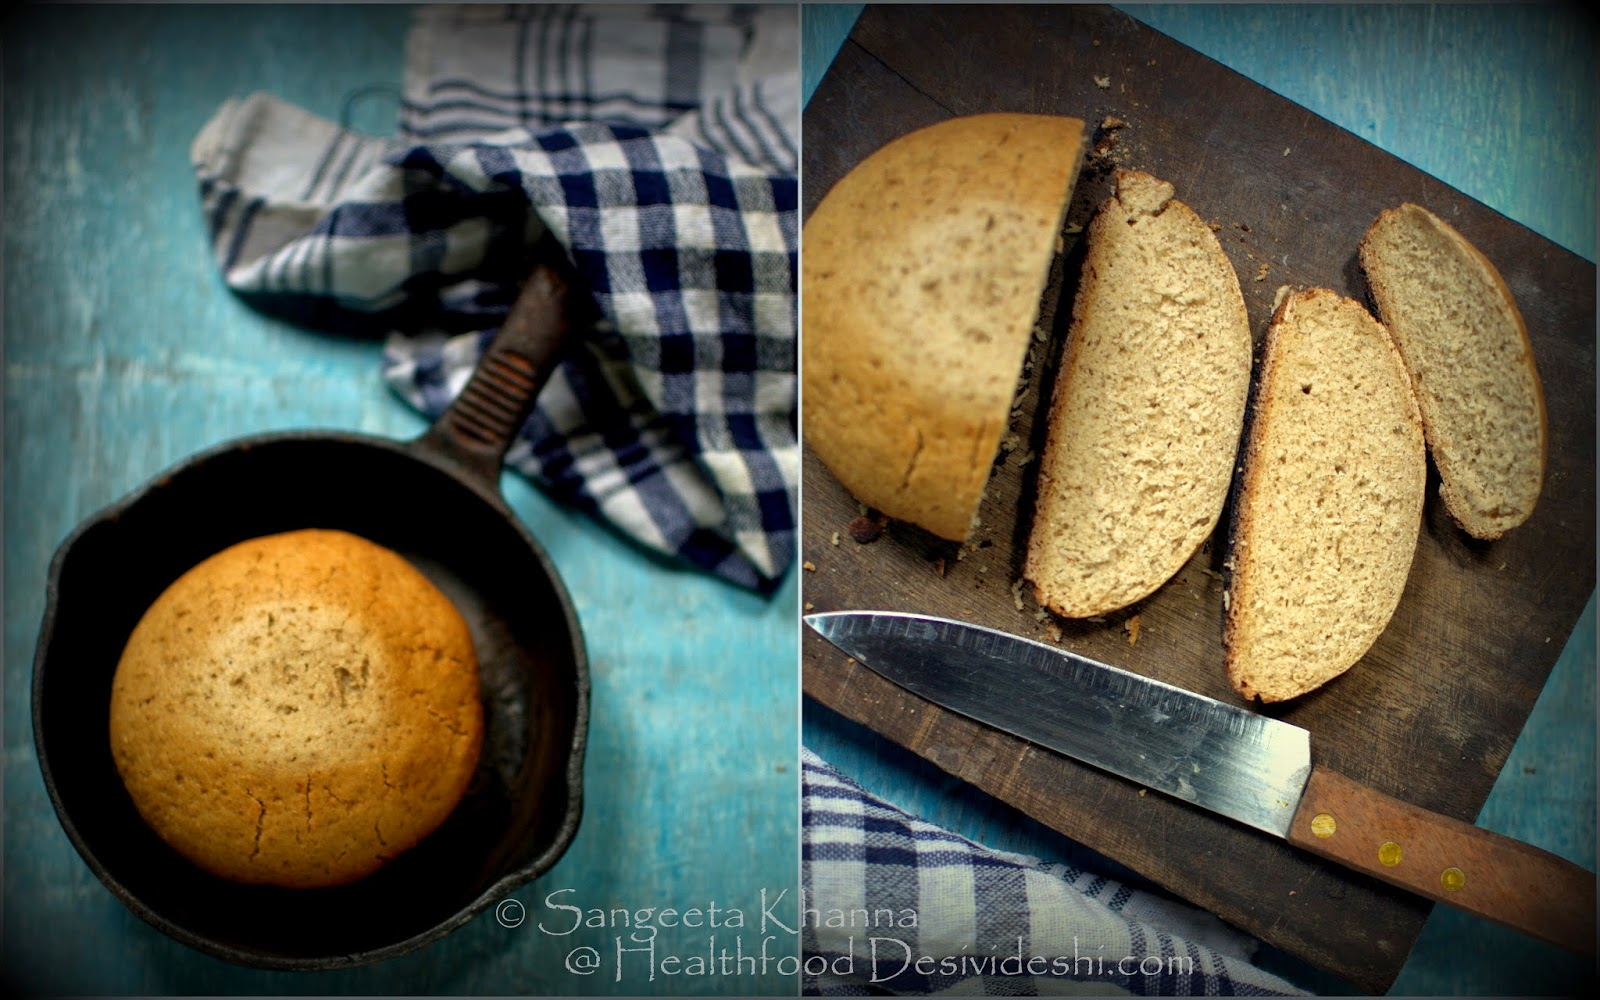 baking breads : skillet bread | whole wheat and sorghum bread baked in a skillet